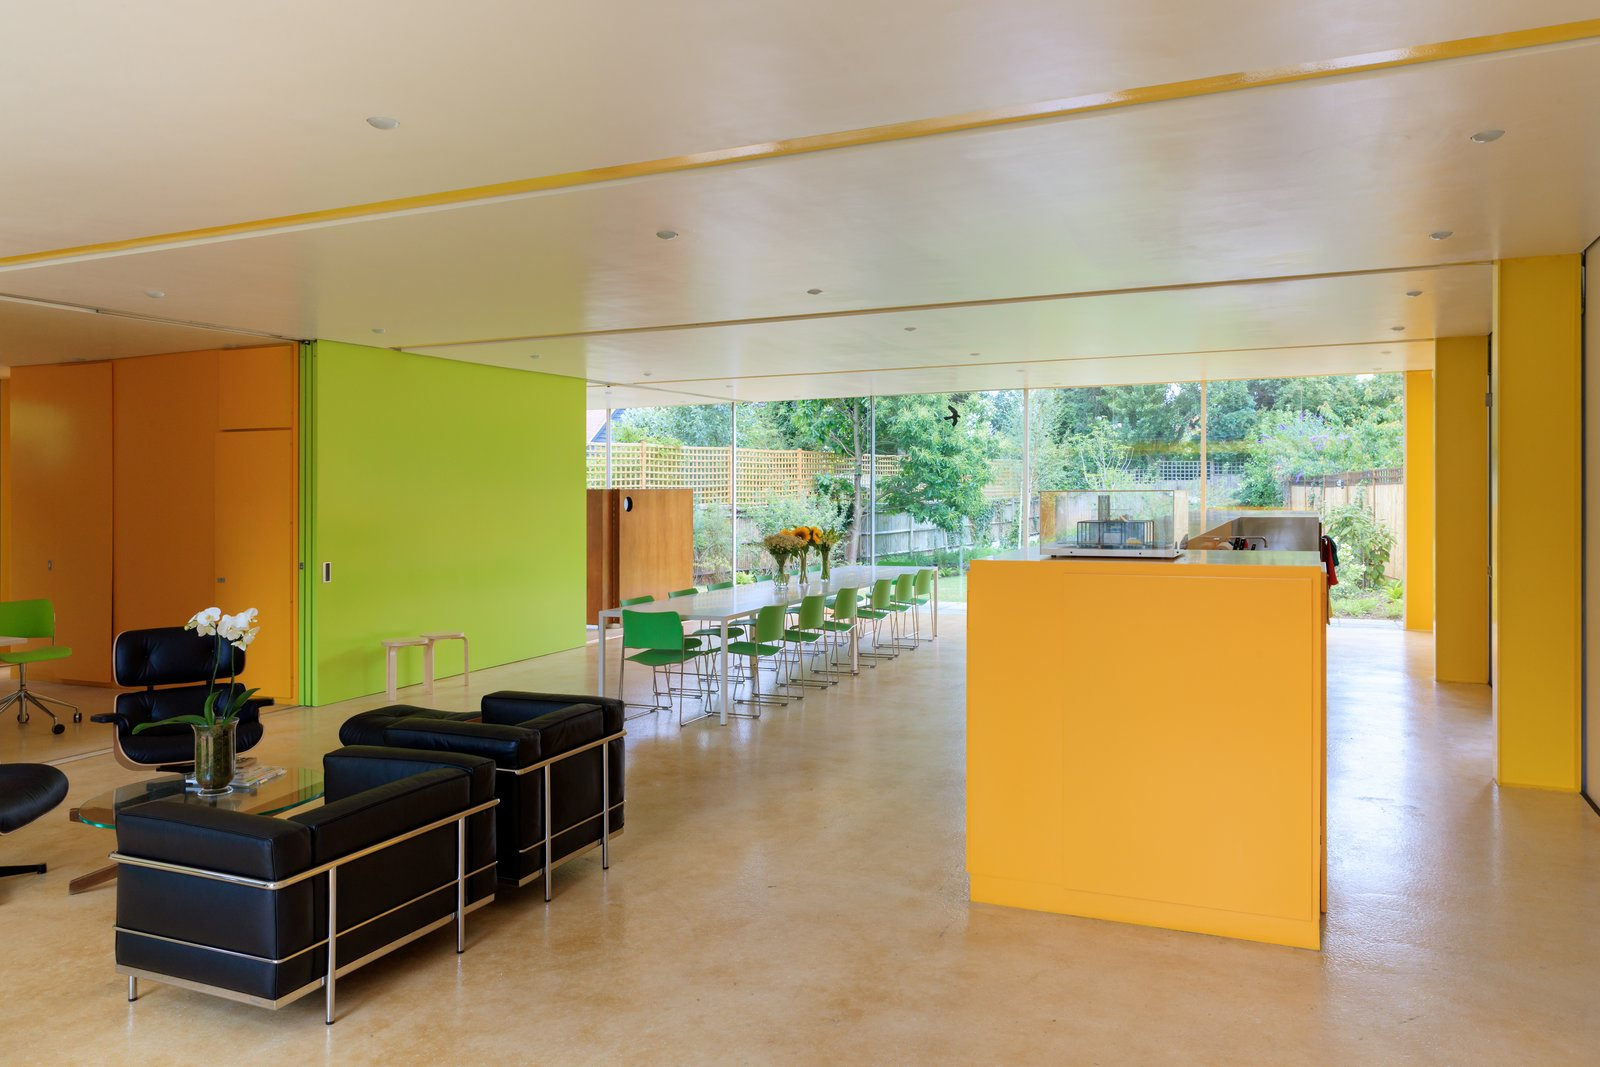 Dining Room, Table, and Chair  Photo 7 of 14 in Fully Renovated, Wimbledon House by Richard Rogers Hosts New Architecture Fellows in London